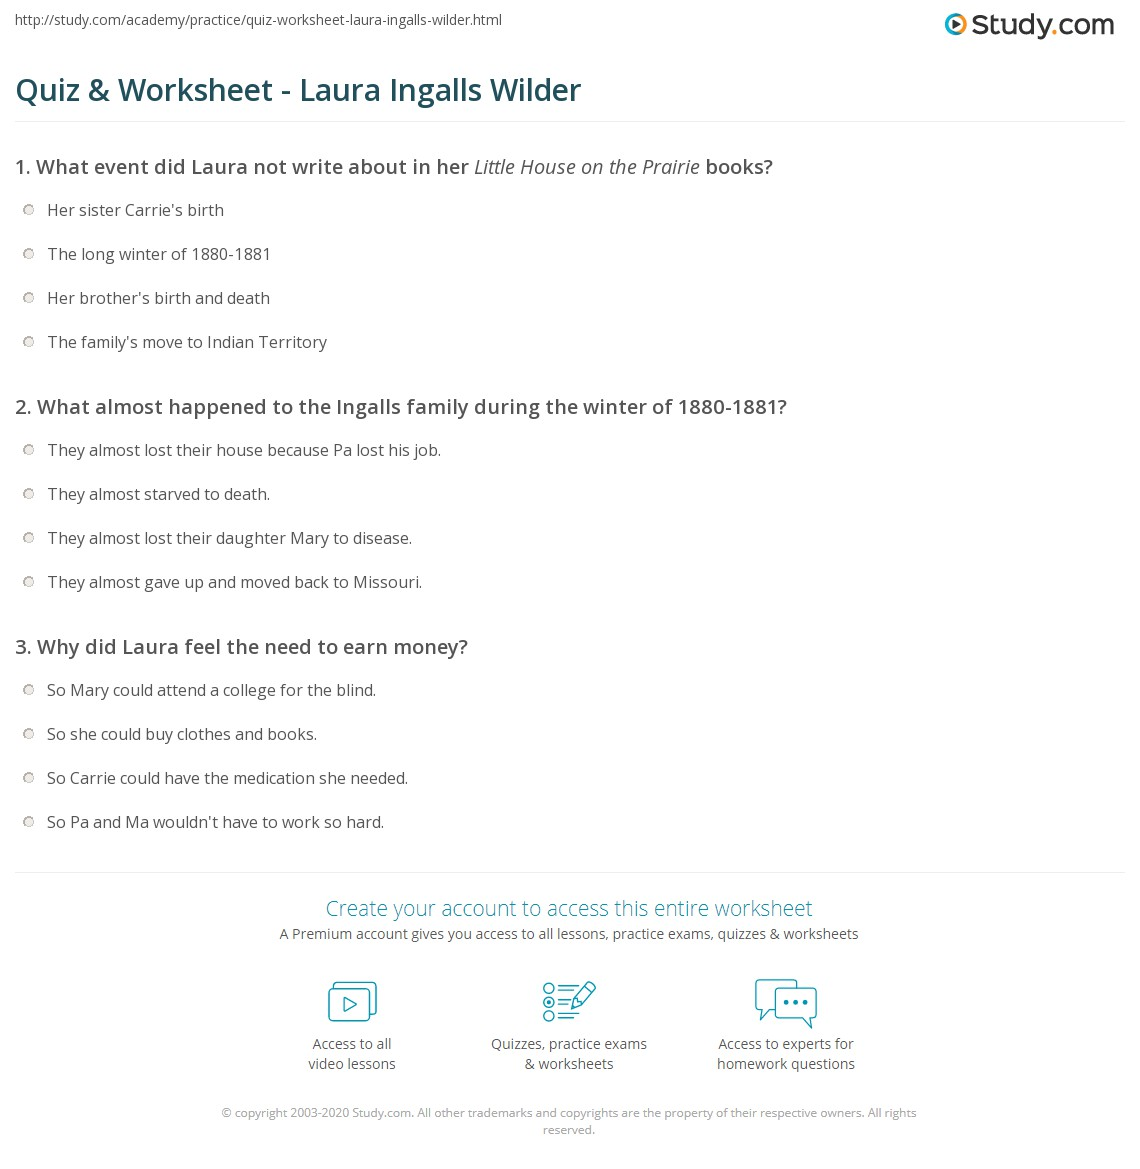 quiz worksheet laura ingalls wilder. Black Bedroom Furniture Sets. Home Design Ideas